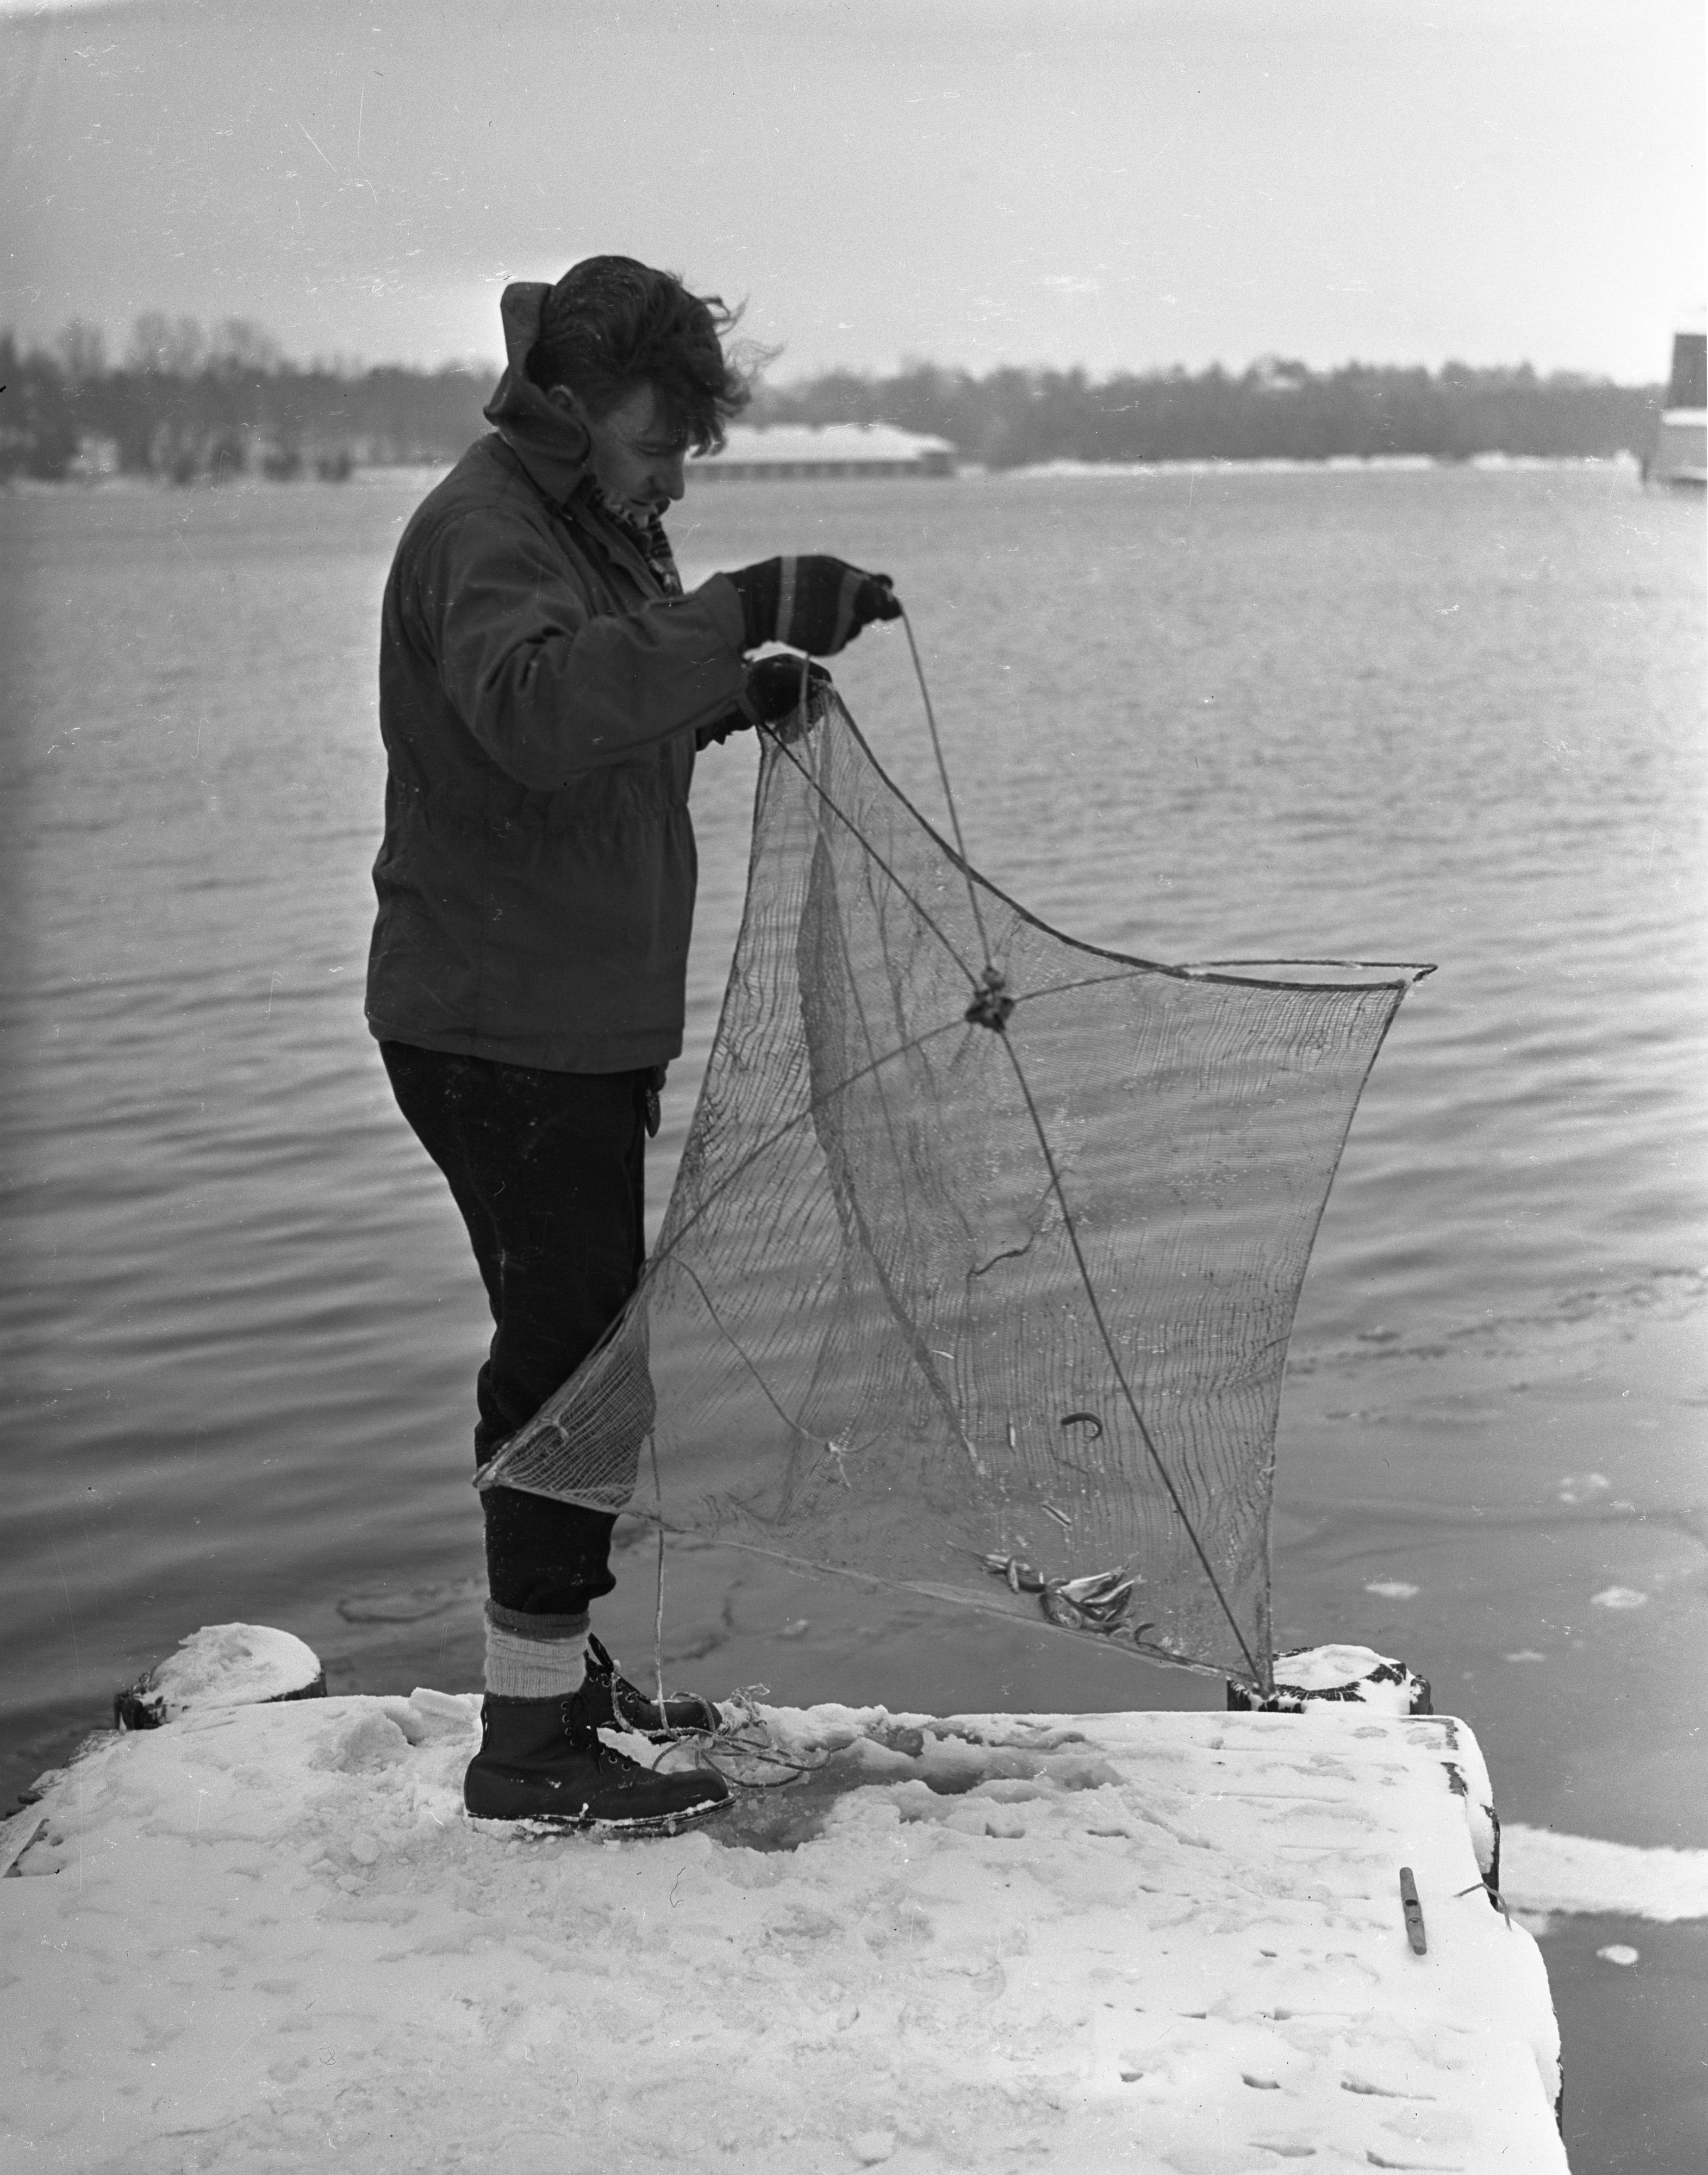 Jim Cook Fishing With Netting In Charlevoix, February 1940 image